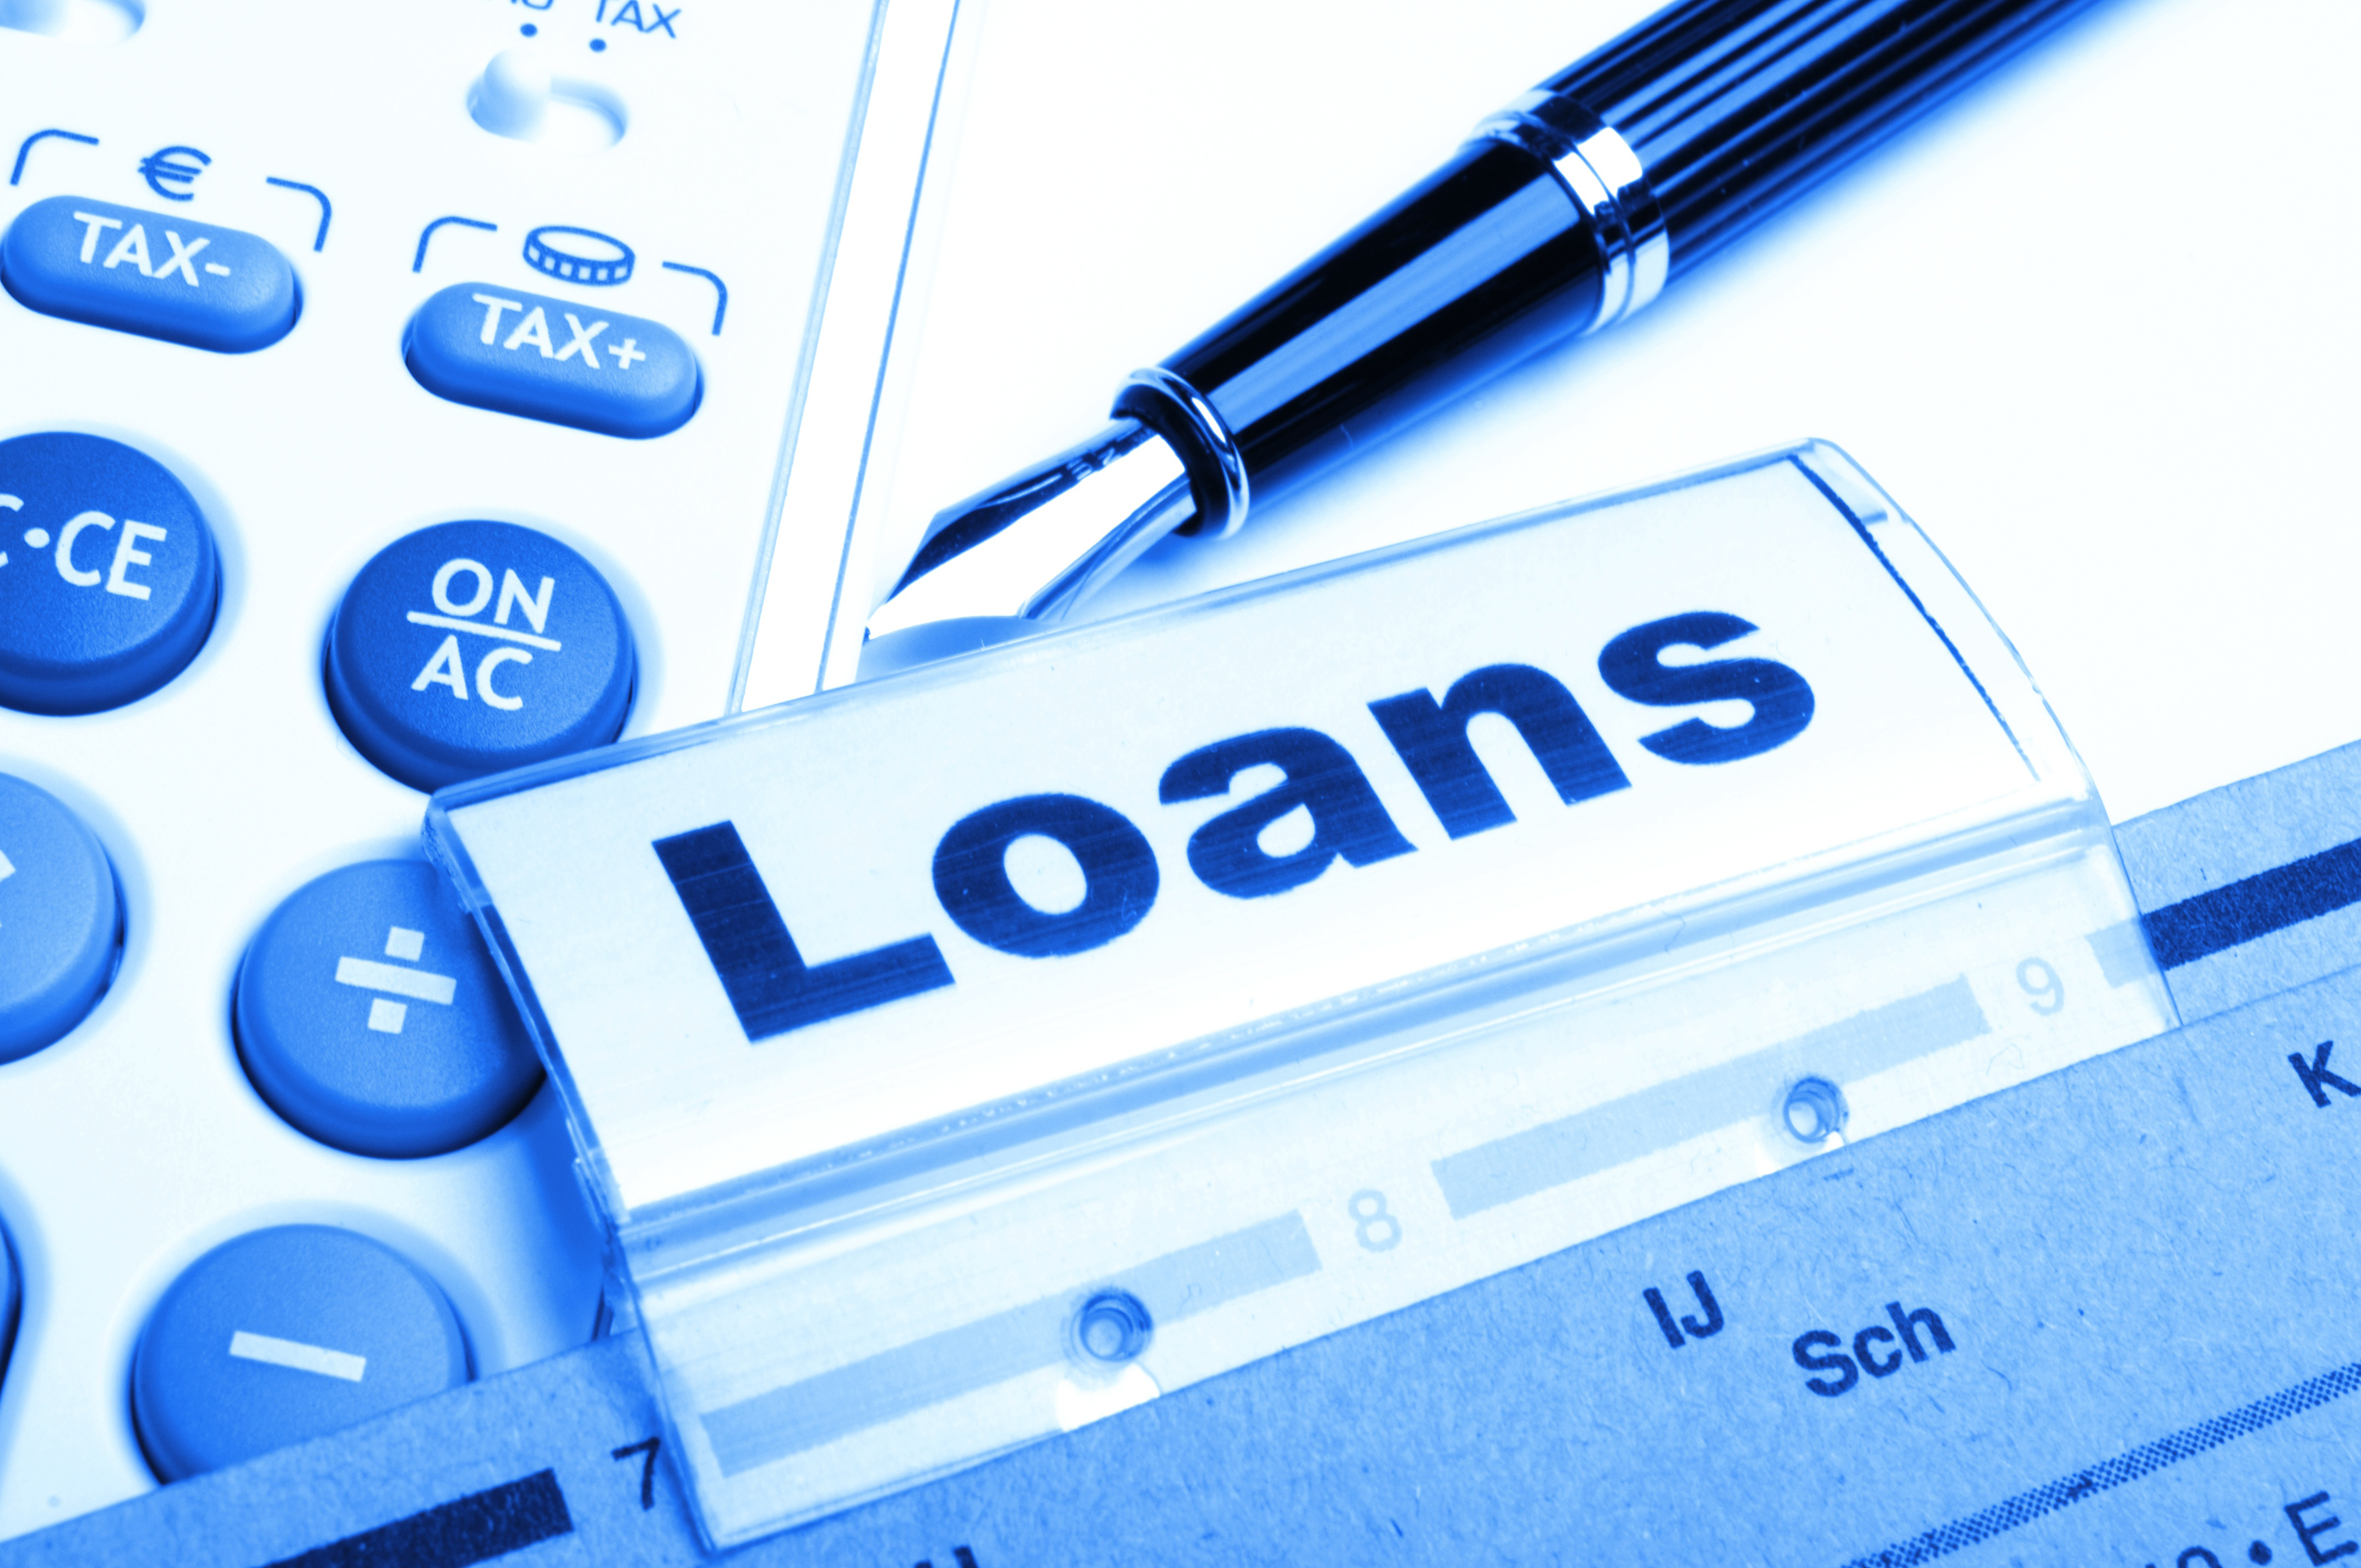 What banks offer personal loans image 2